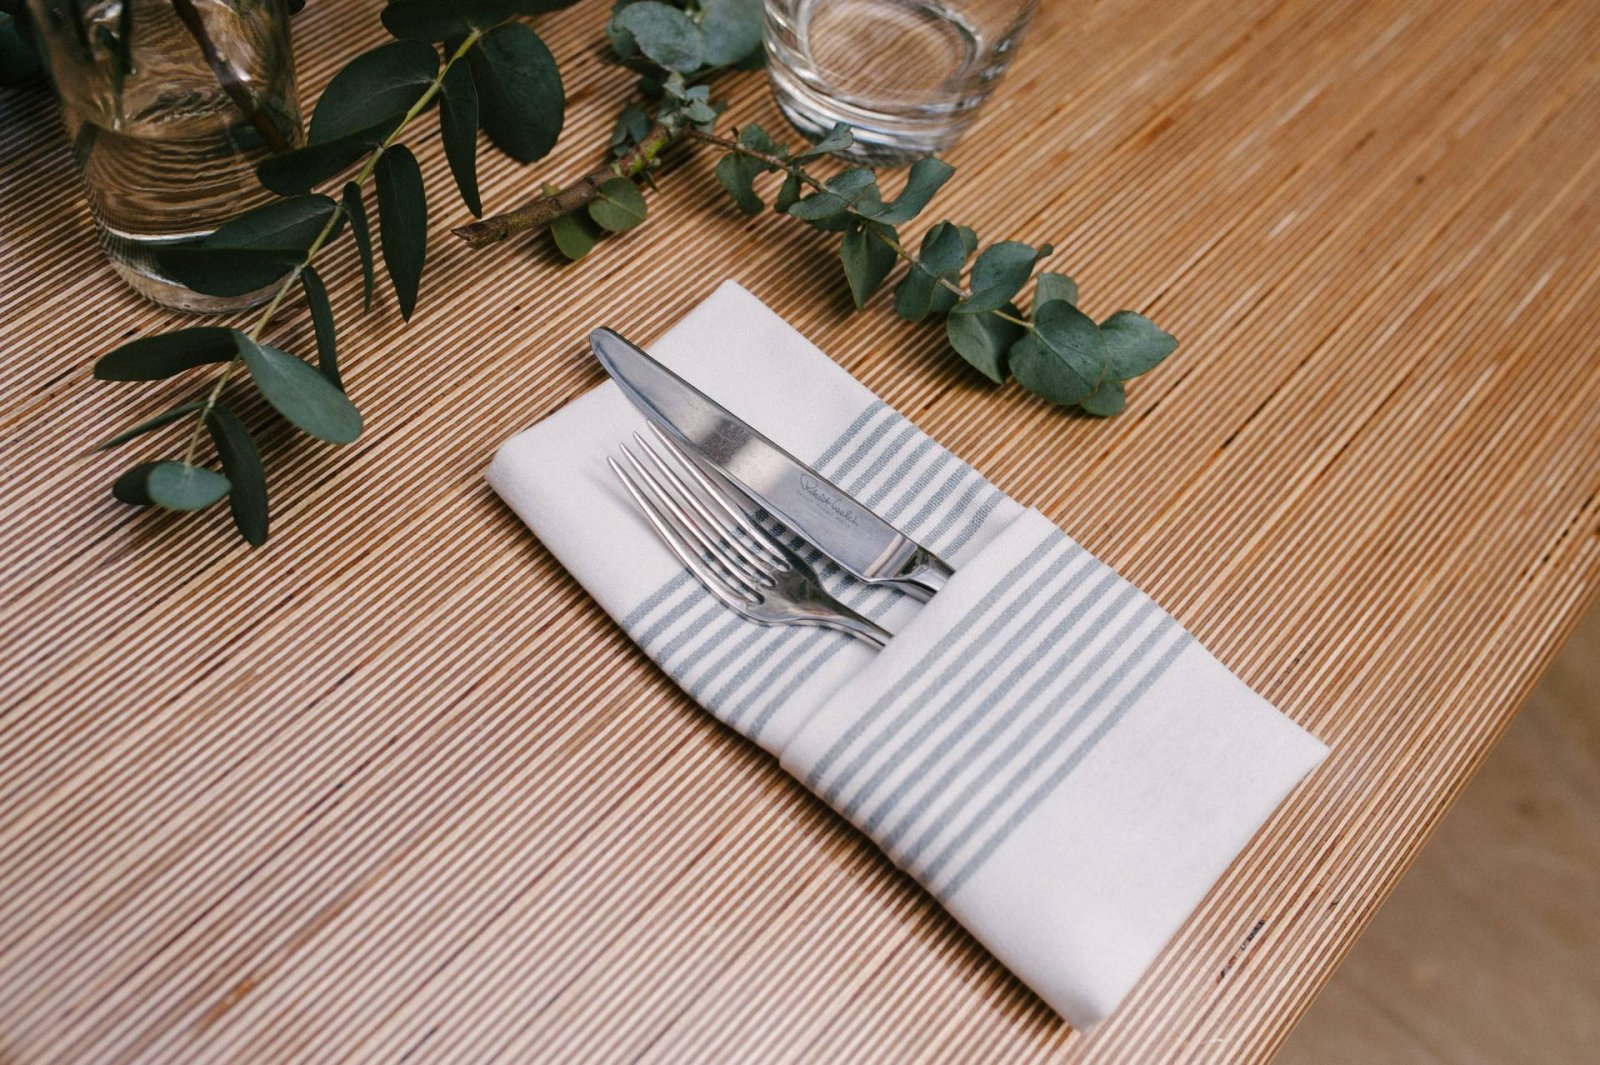 family dinner knife and fork on table in napkin jacket potato